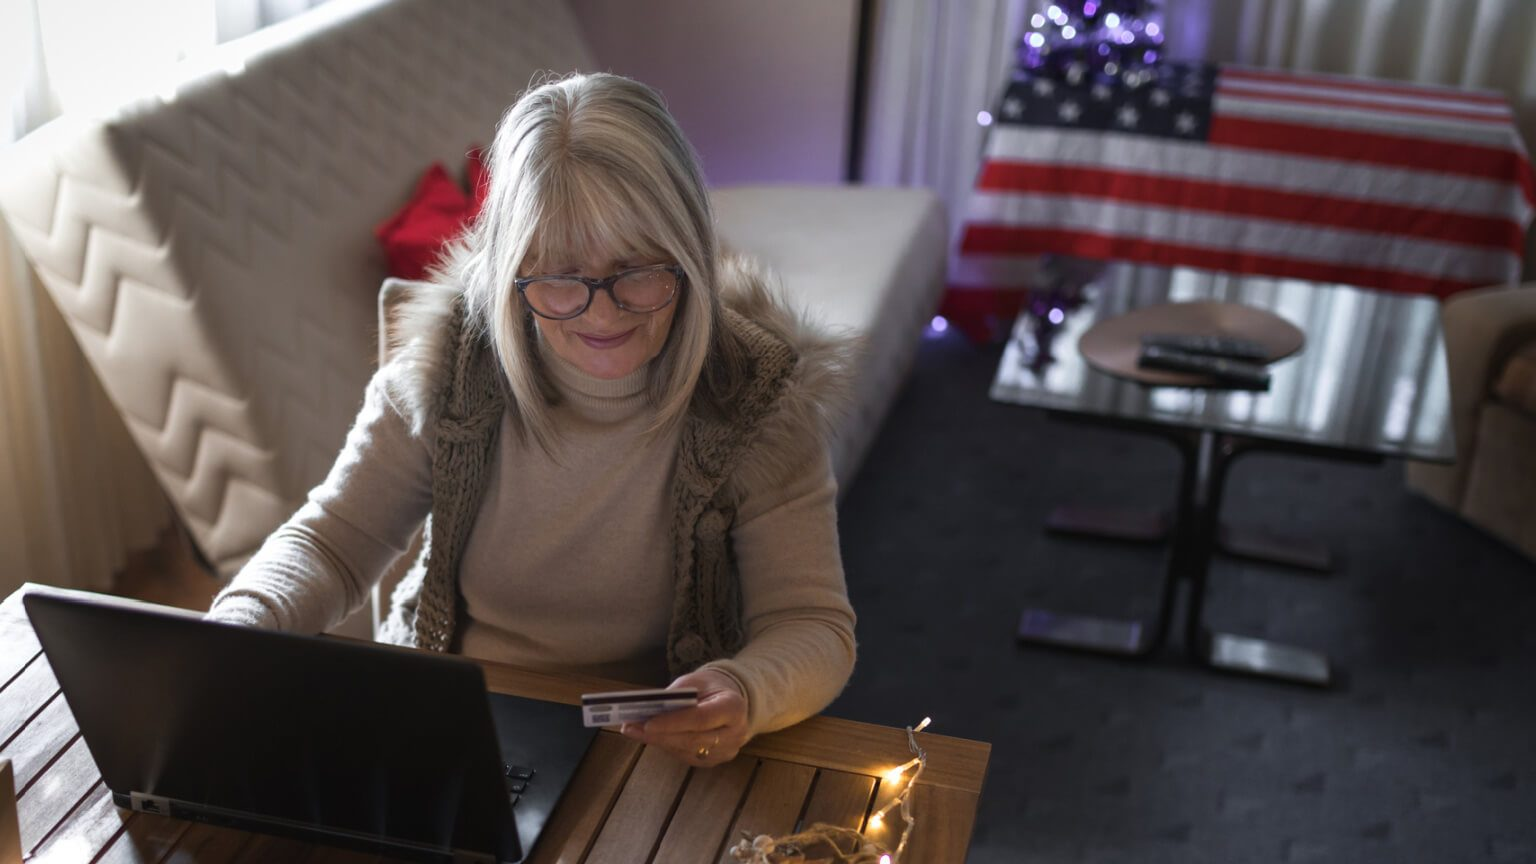 woman making a donation on her laptop with an american flag in the background